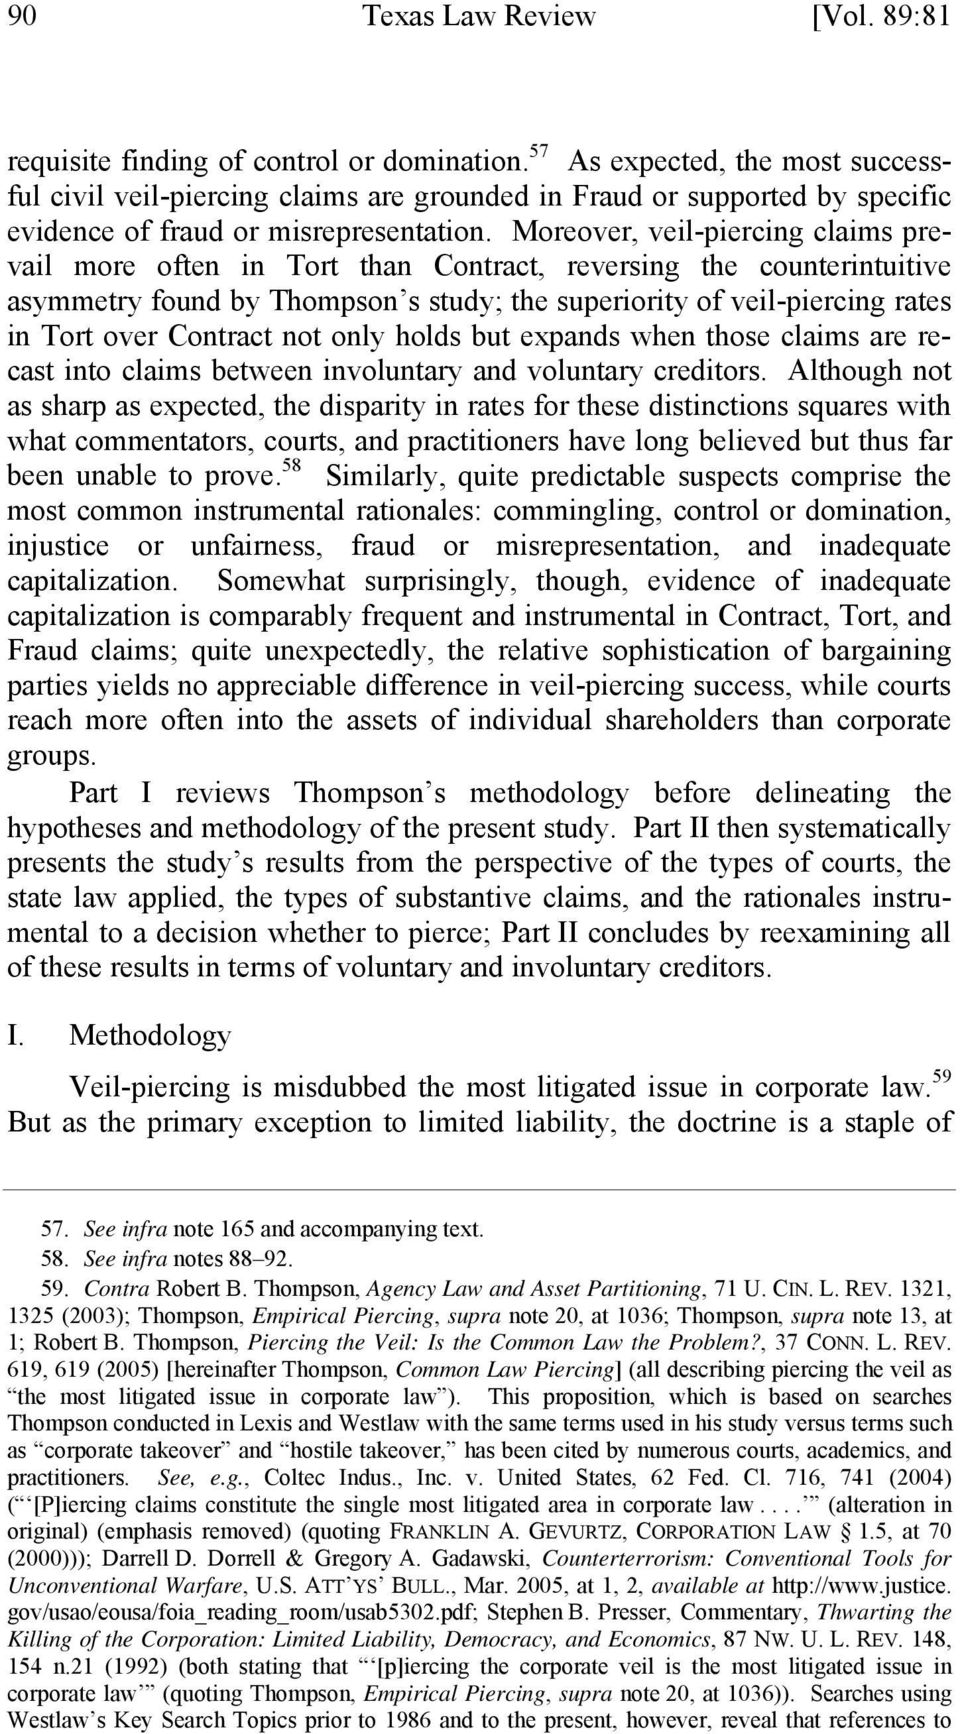 Moreover, veil-piercing claims prevail more often in Tort than Contract, reversing the counterintuitive asymmetry found by Thompson s study; the superiority of veil-piercing rates in Tort over